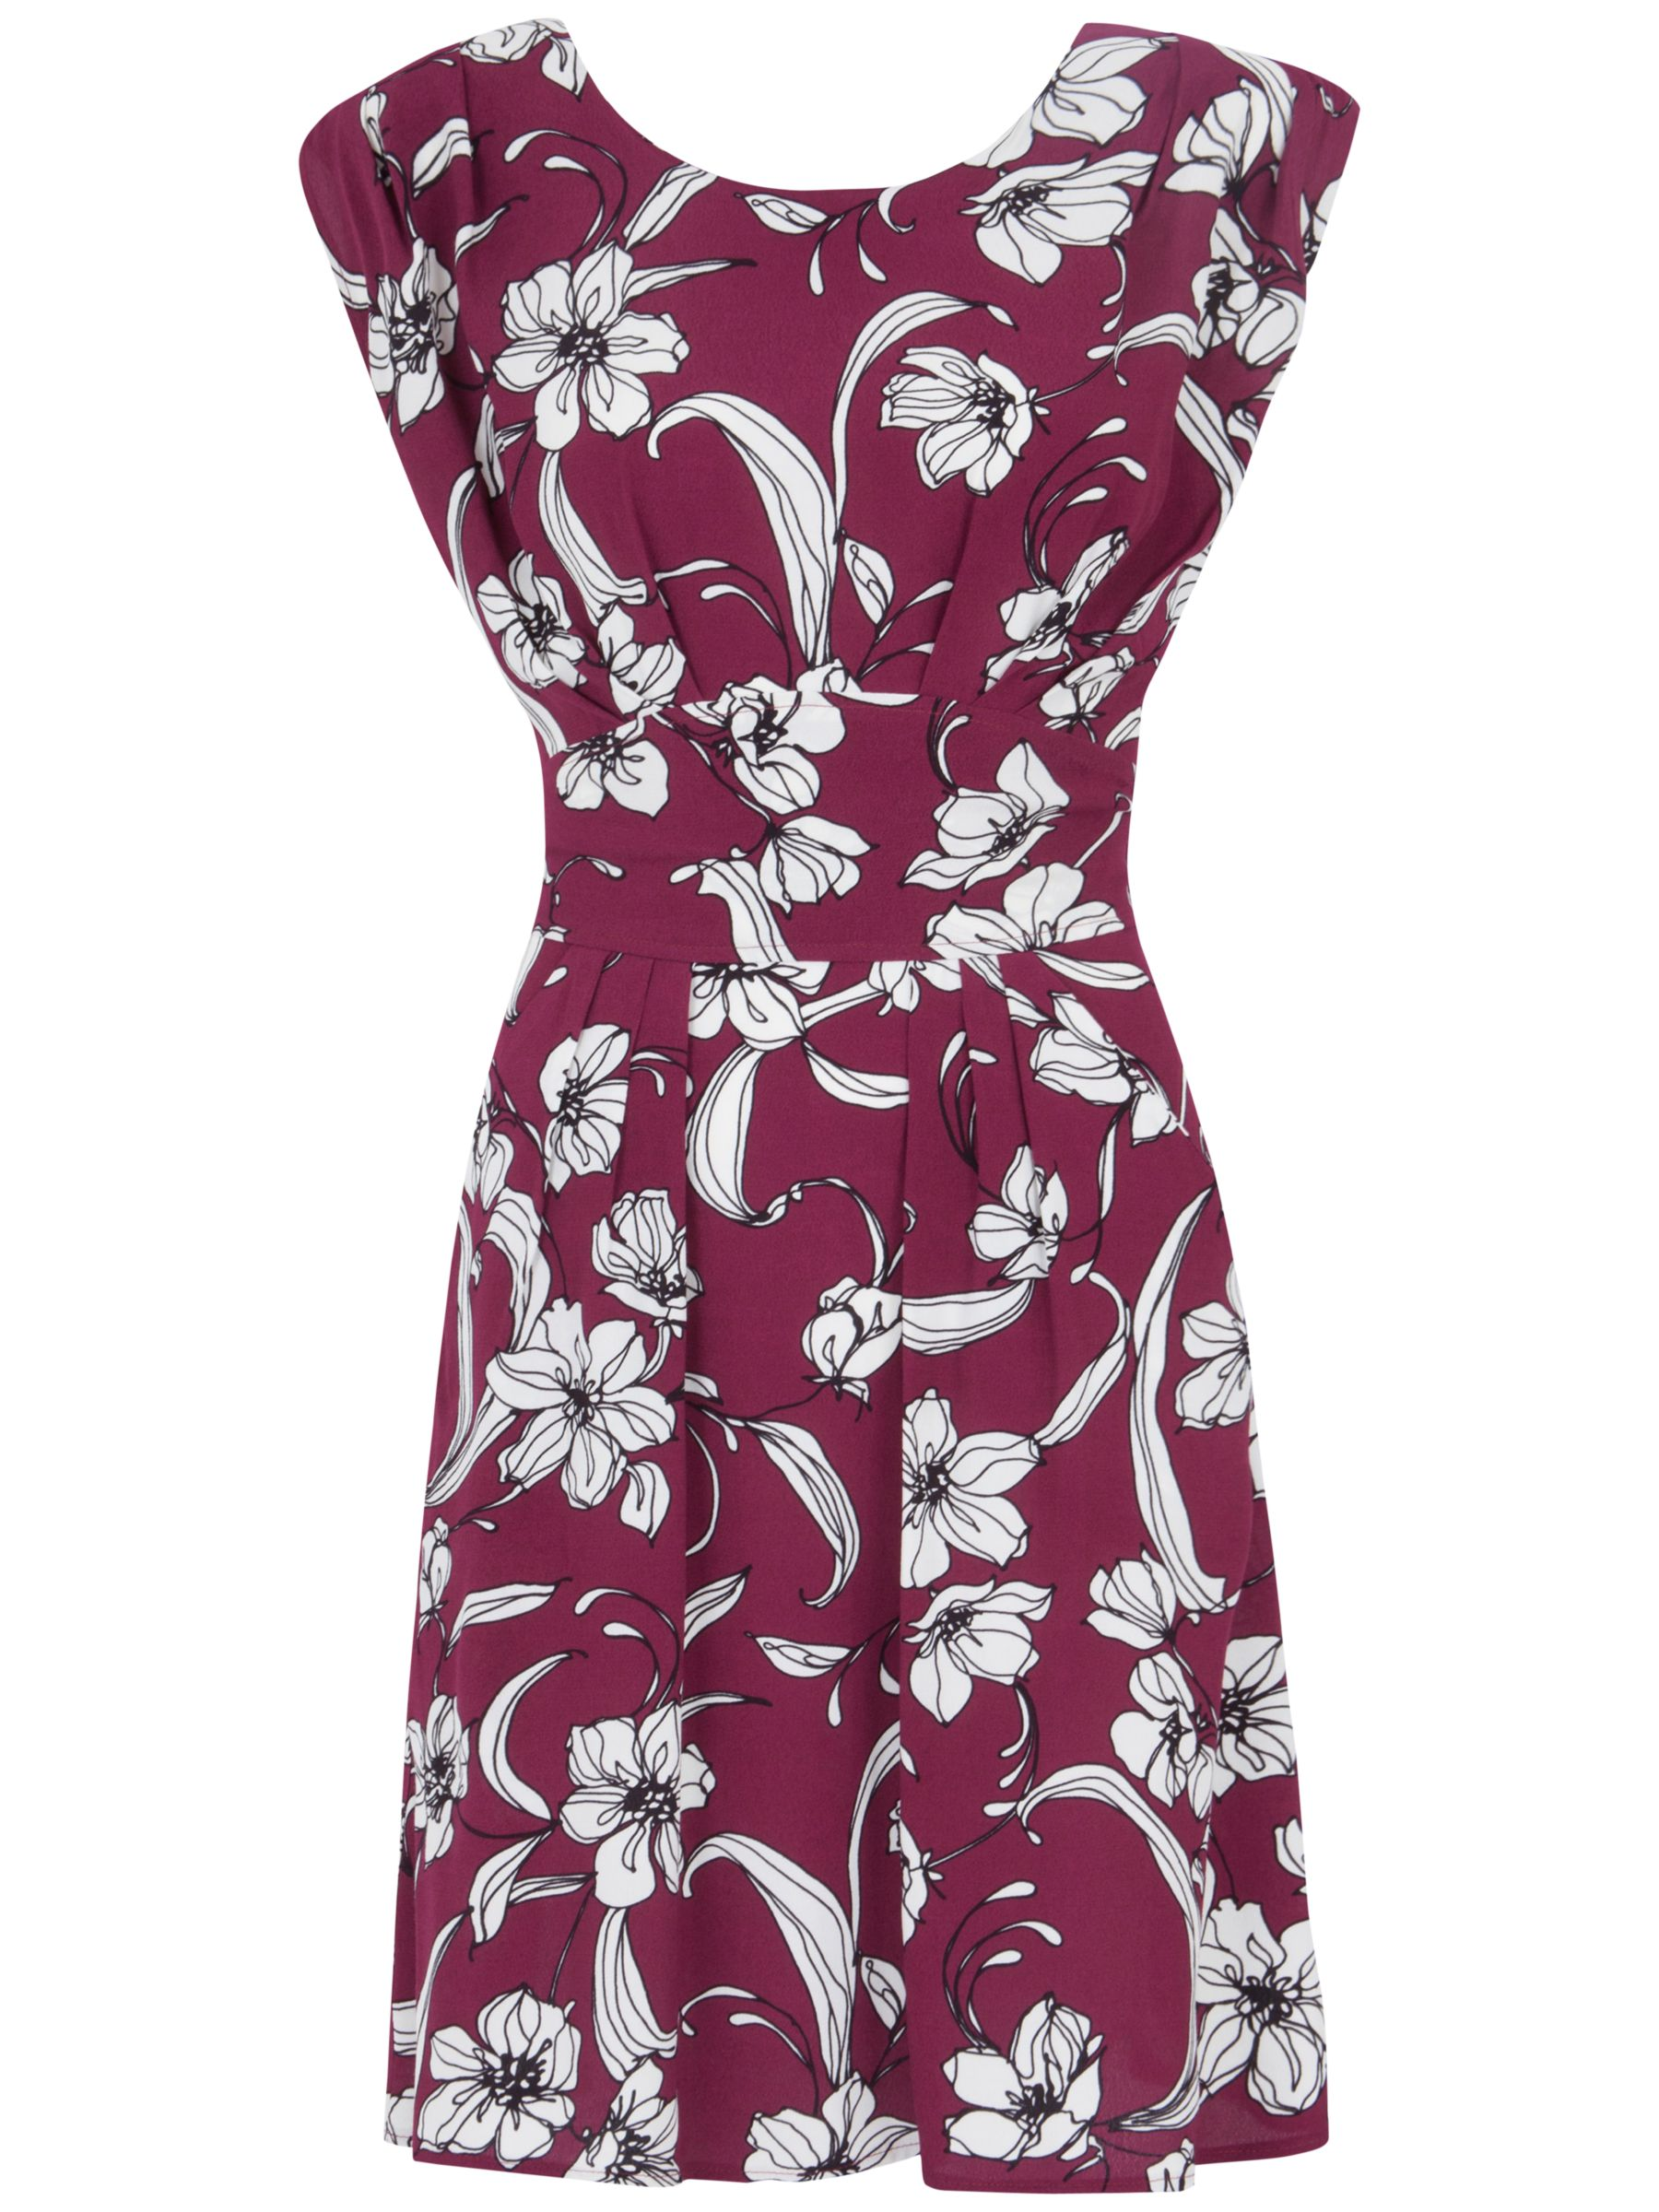 closet floral tie back dress burgundy, closet, floral, tie, back, dress, burgundy, 14|12, clearance, womenswear offers, womens dresses offers, winter sun, women, inactive womenswear, new reductions, womens dresses, special offers, 1781341